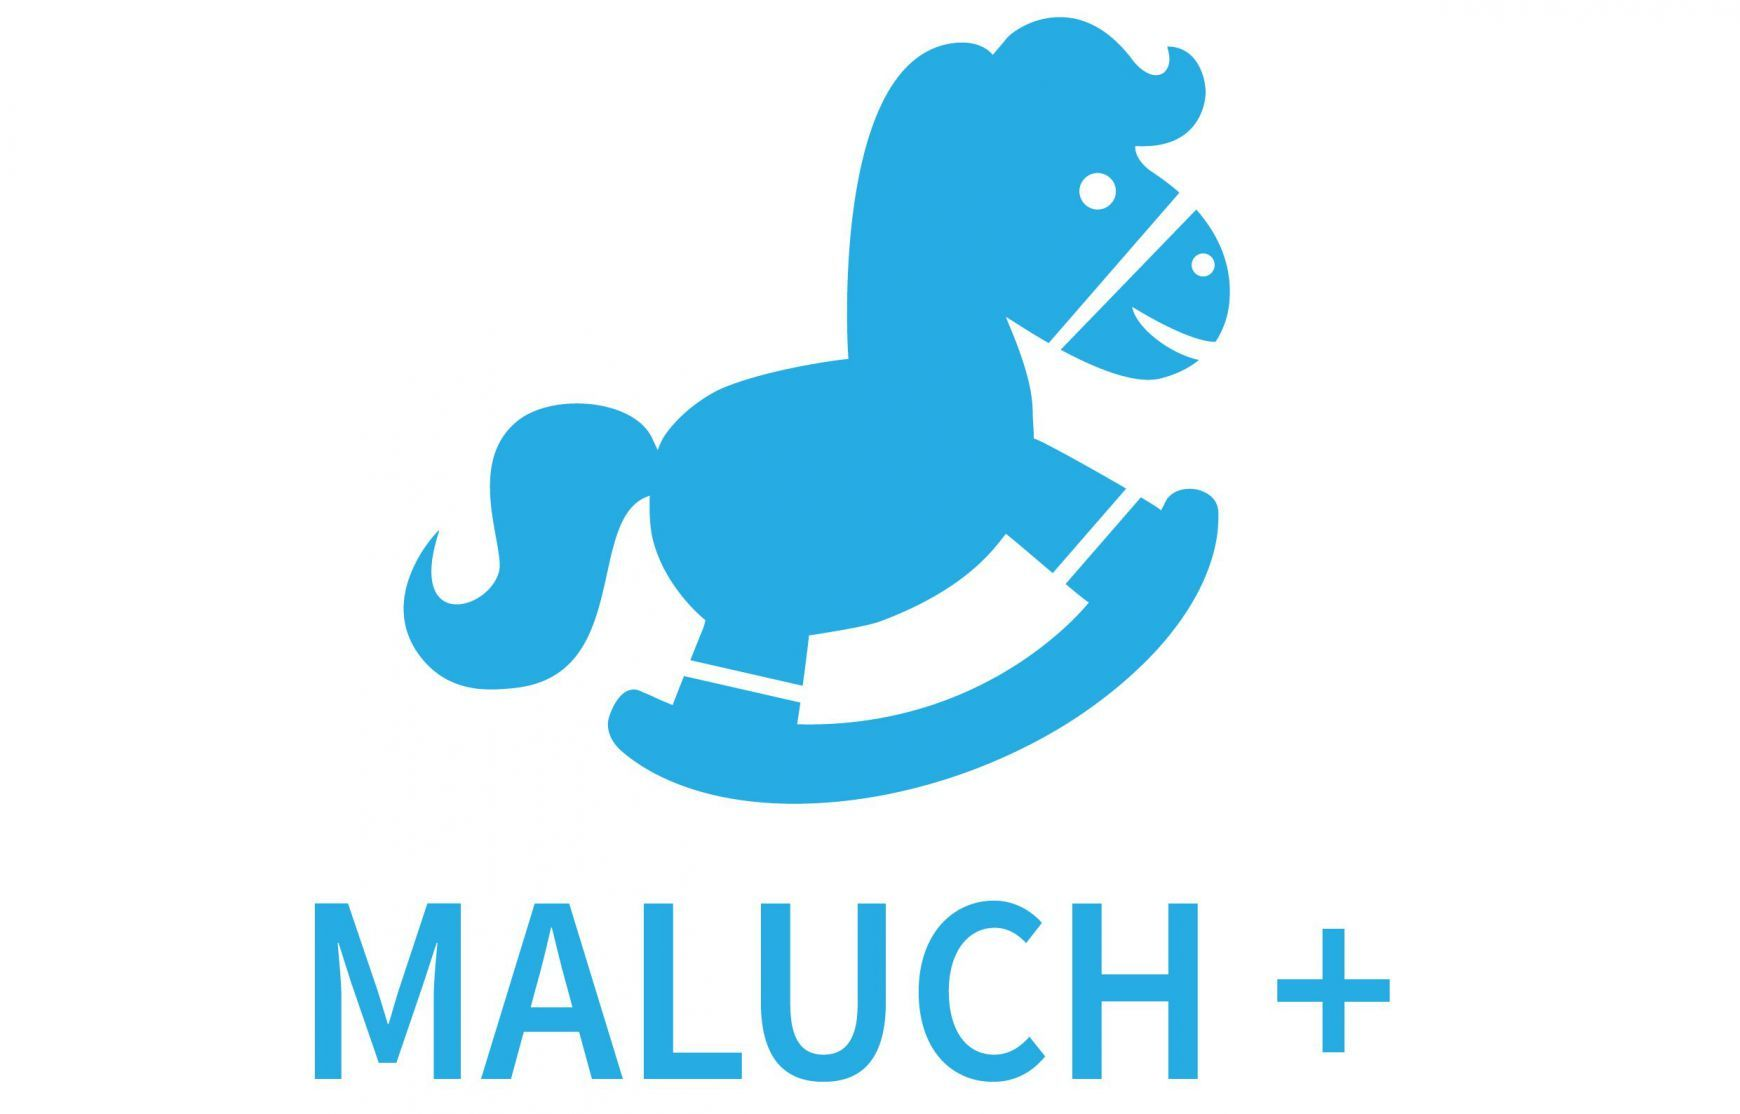 Program Maluch